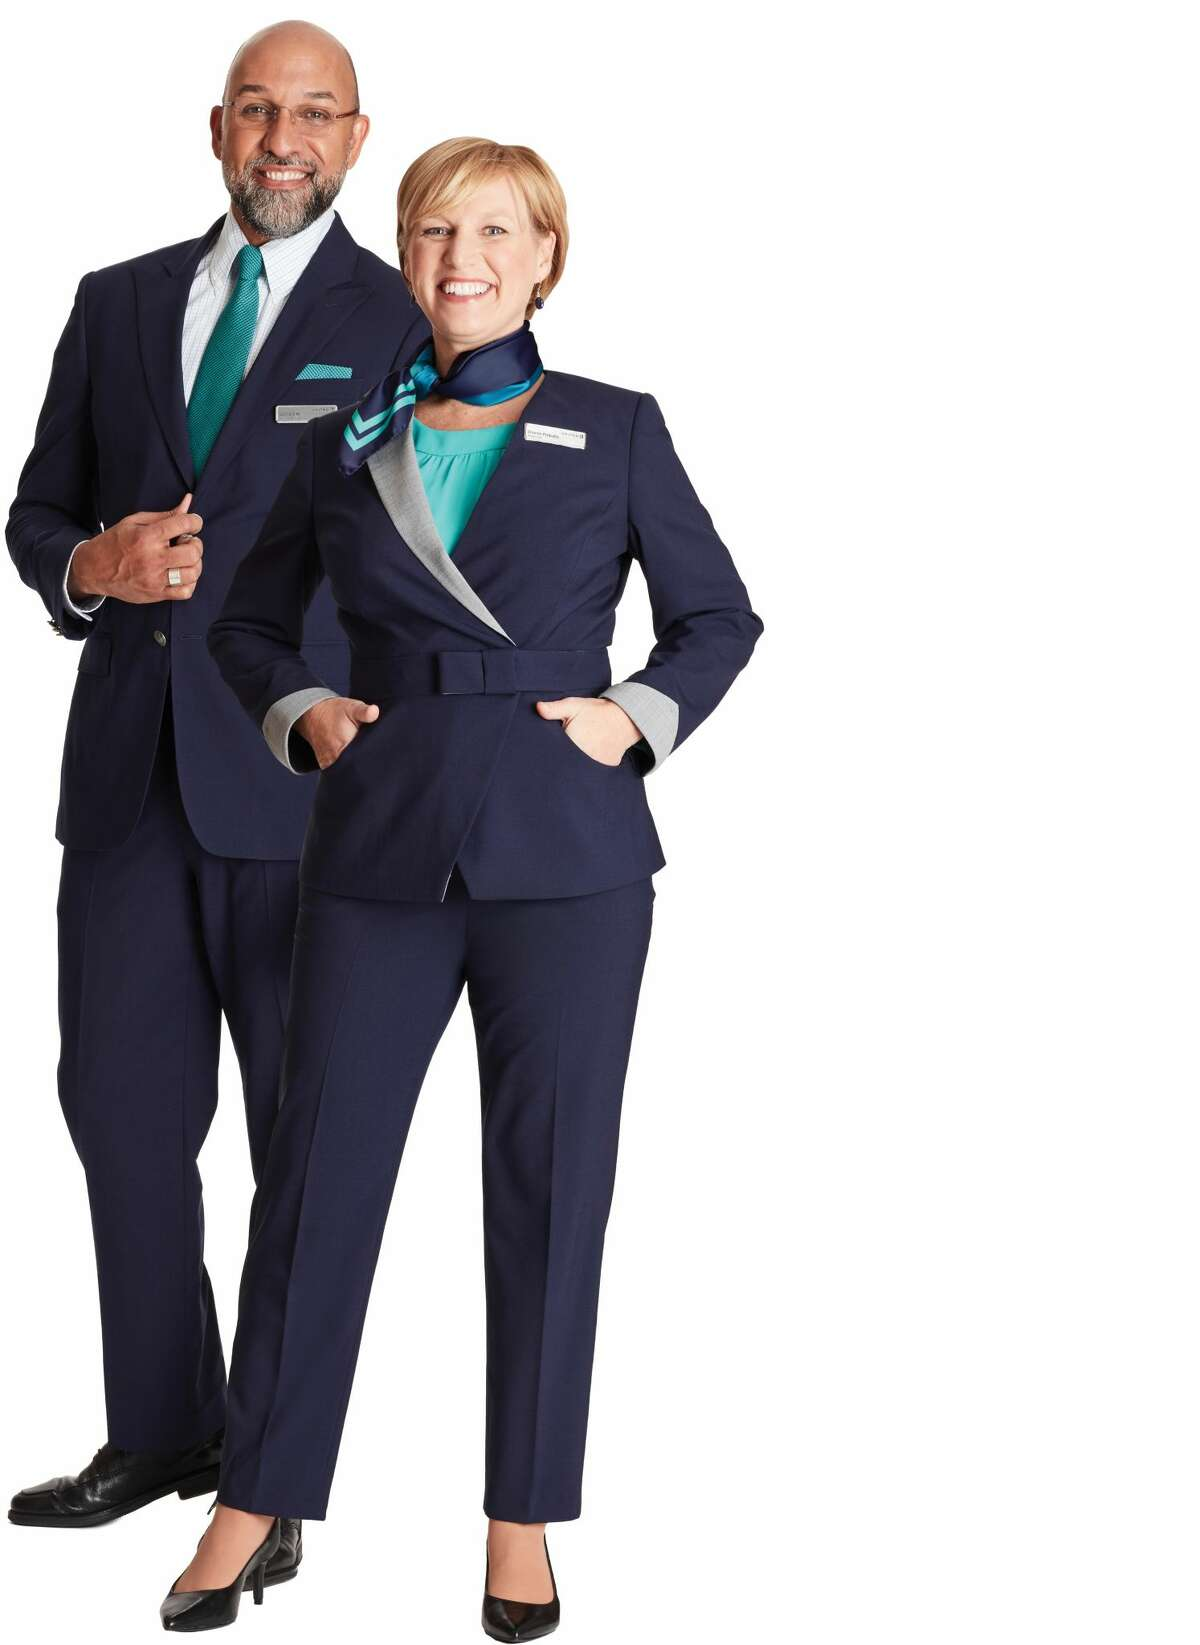 United Airlines new customer service uniforms Brooks Brothers